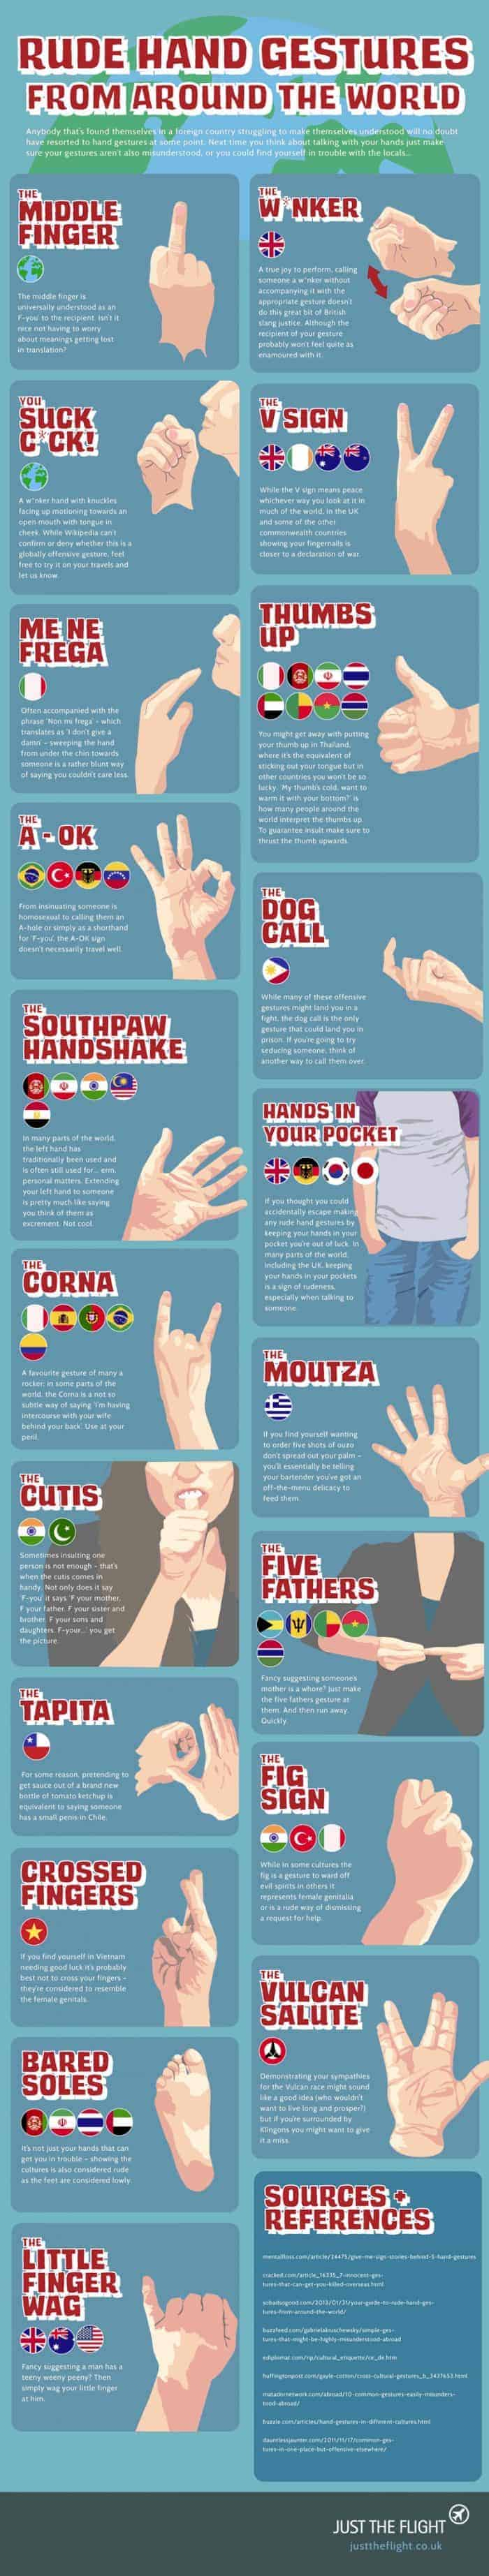 Rude Hand Gestures from Around the World 3